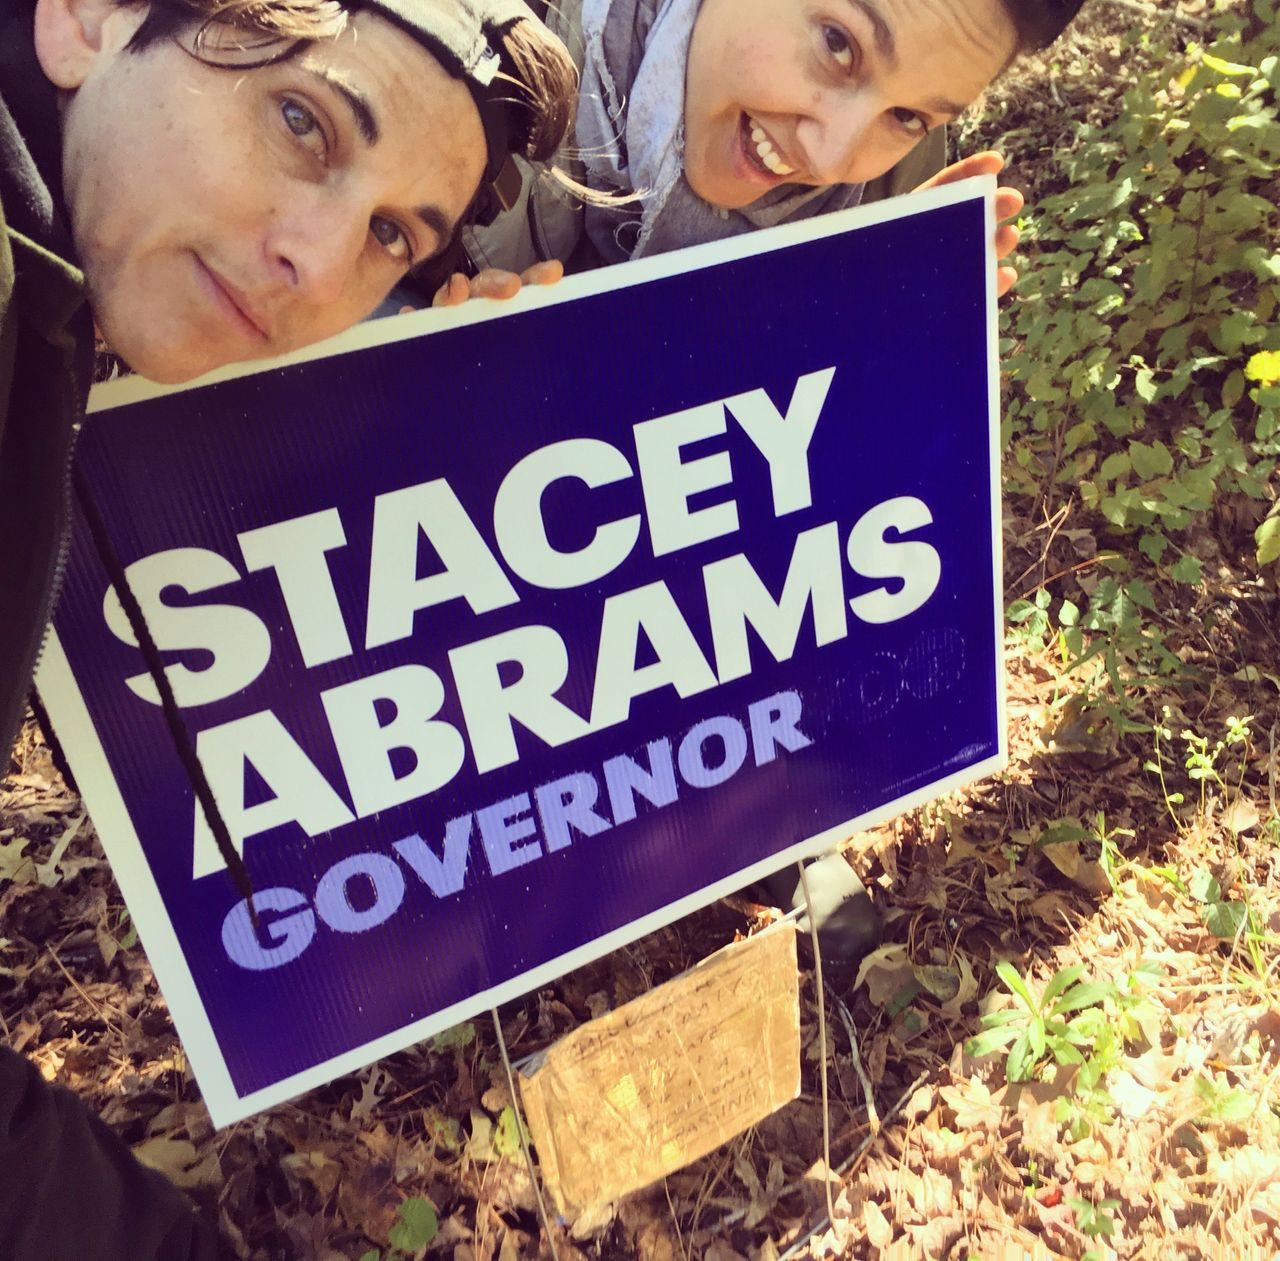 Katie and I taking a selfie in front of our second Stacey Abrams sign to replace the one that was stolen, Eatonton, Georgia, in October 2018.